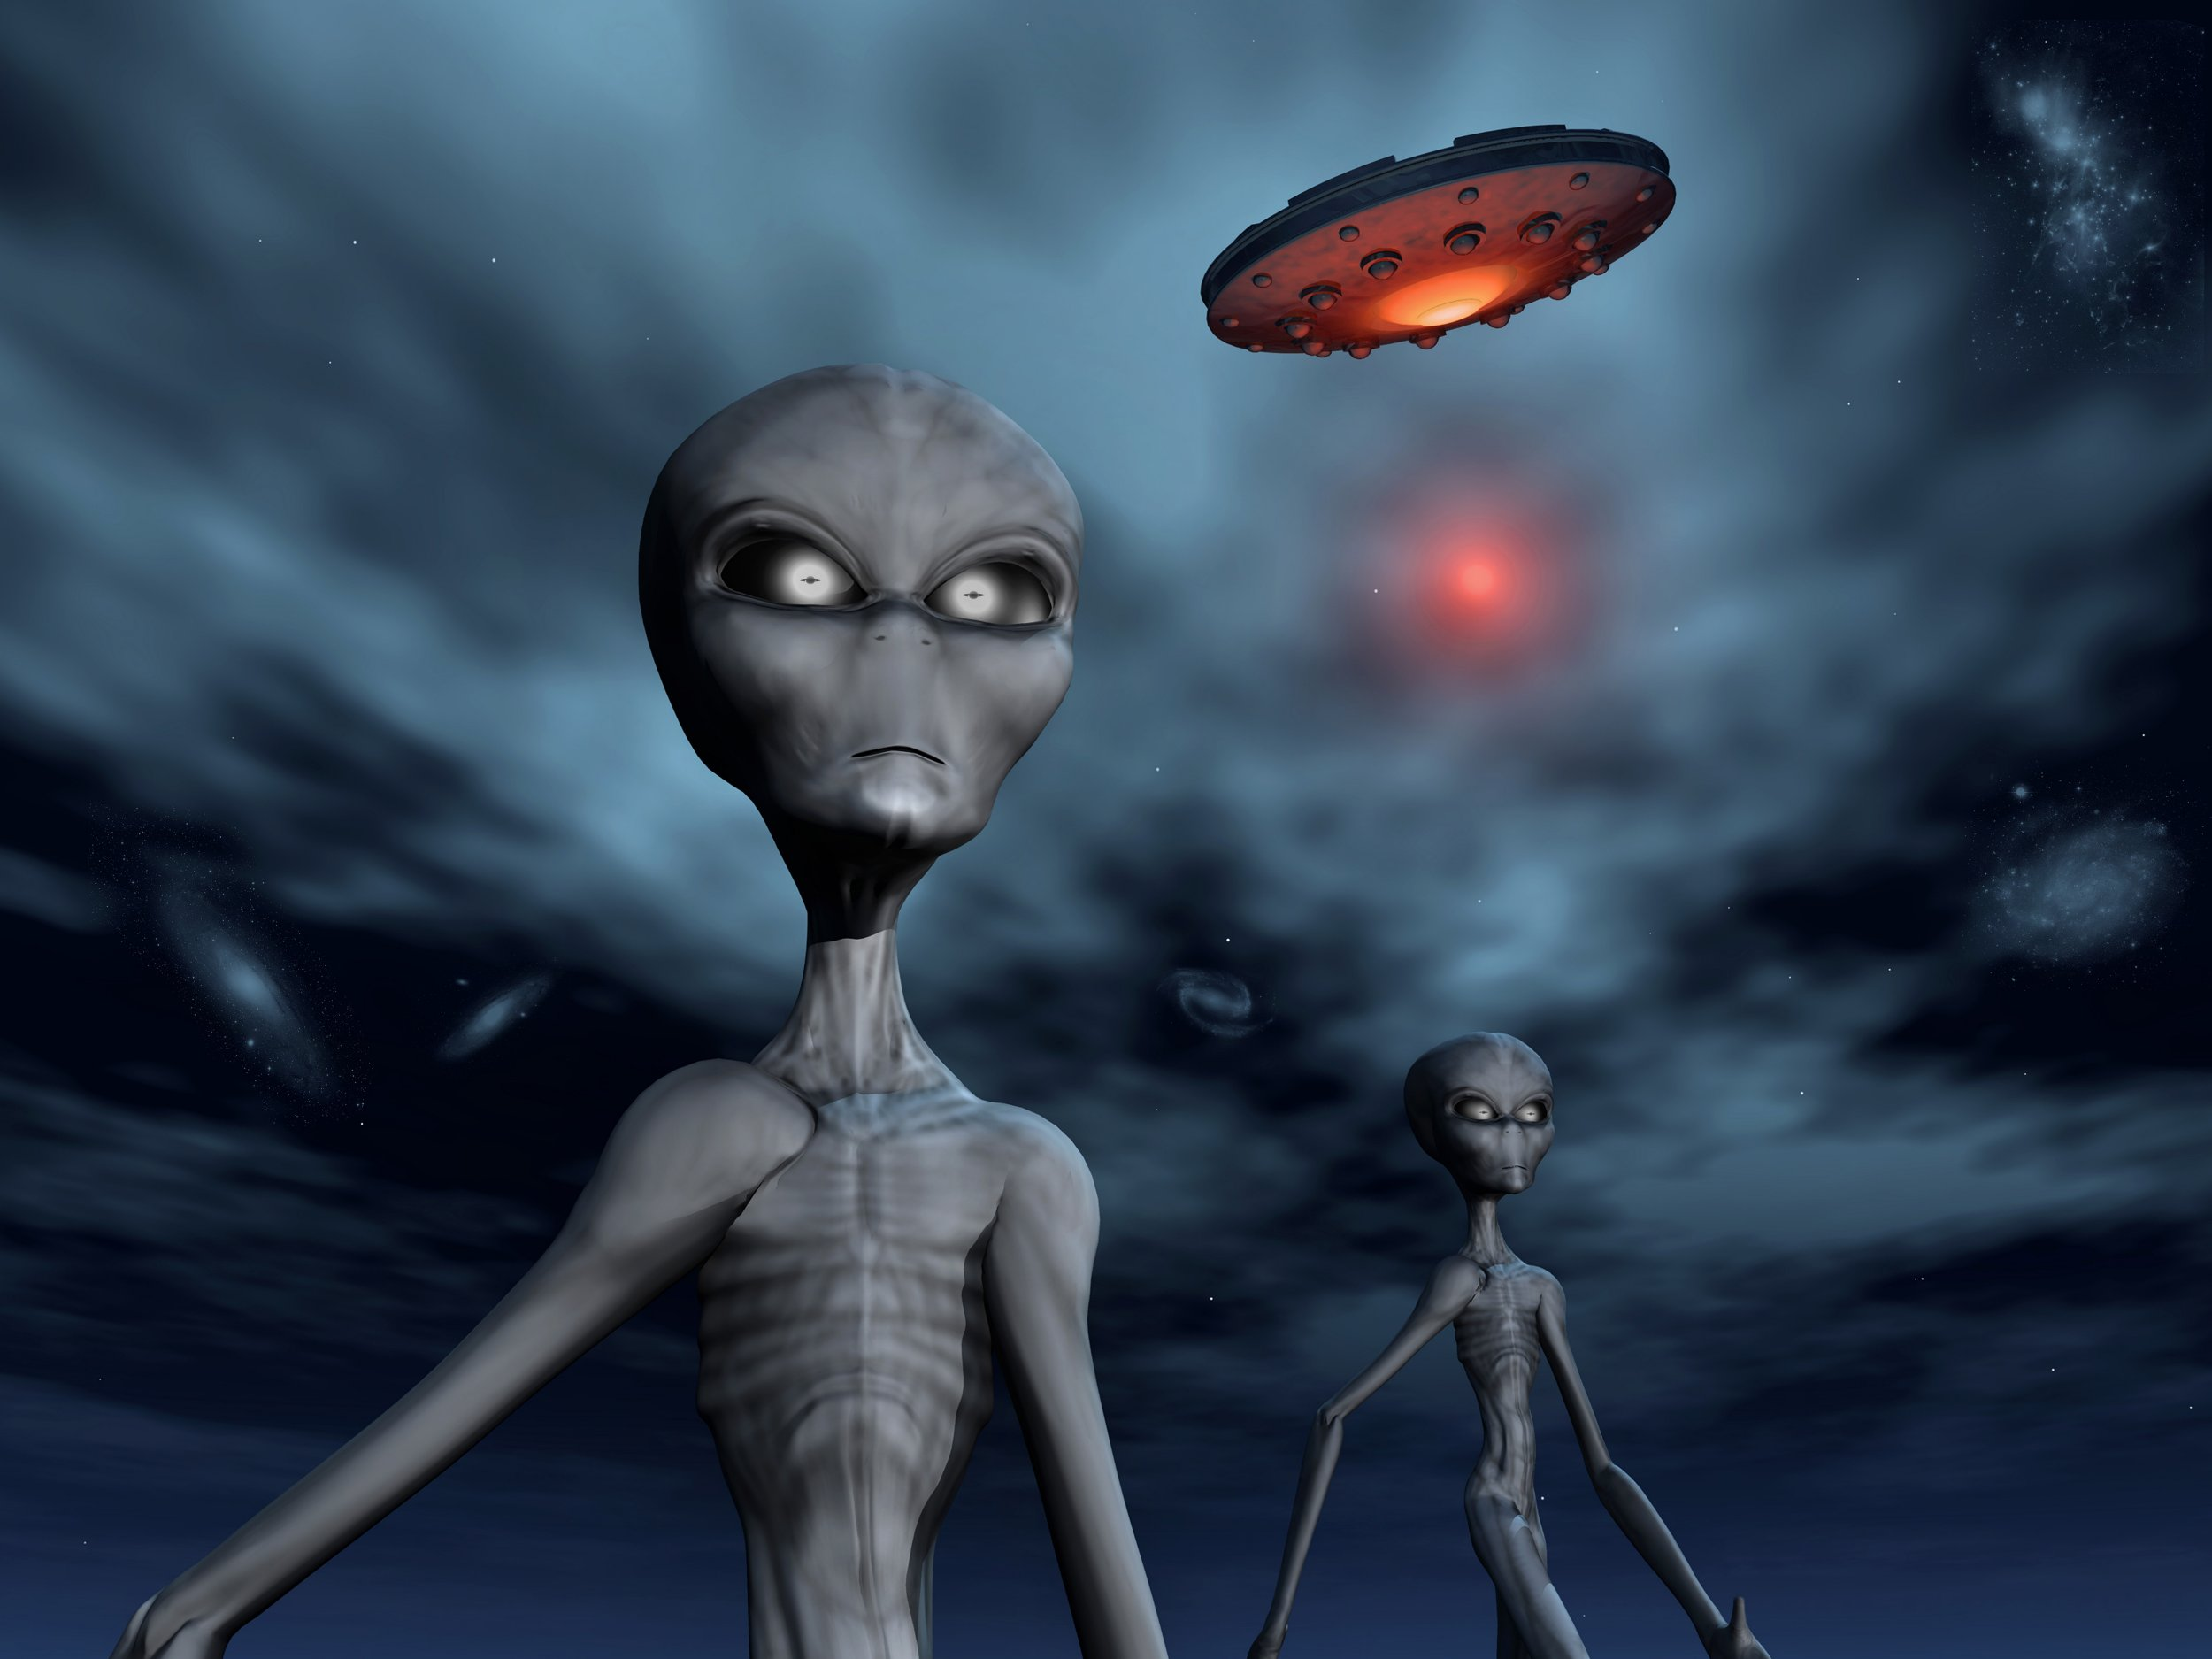 First recording of an alien voice Credit: Getty Images